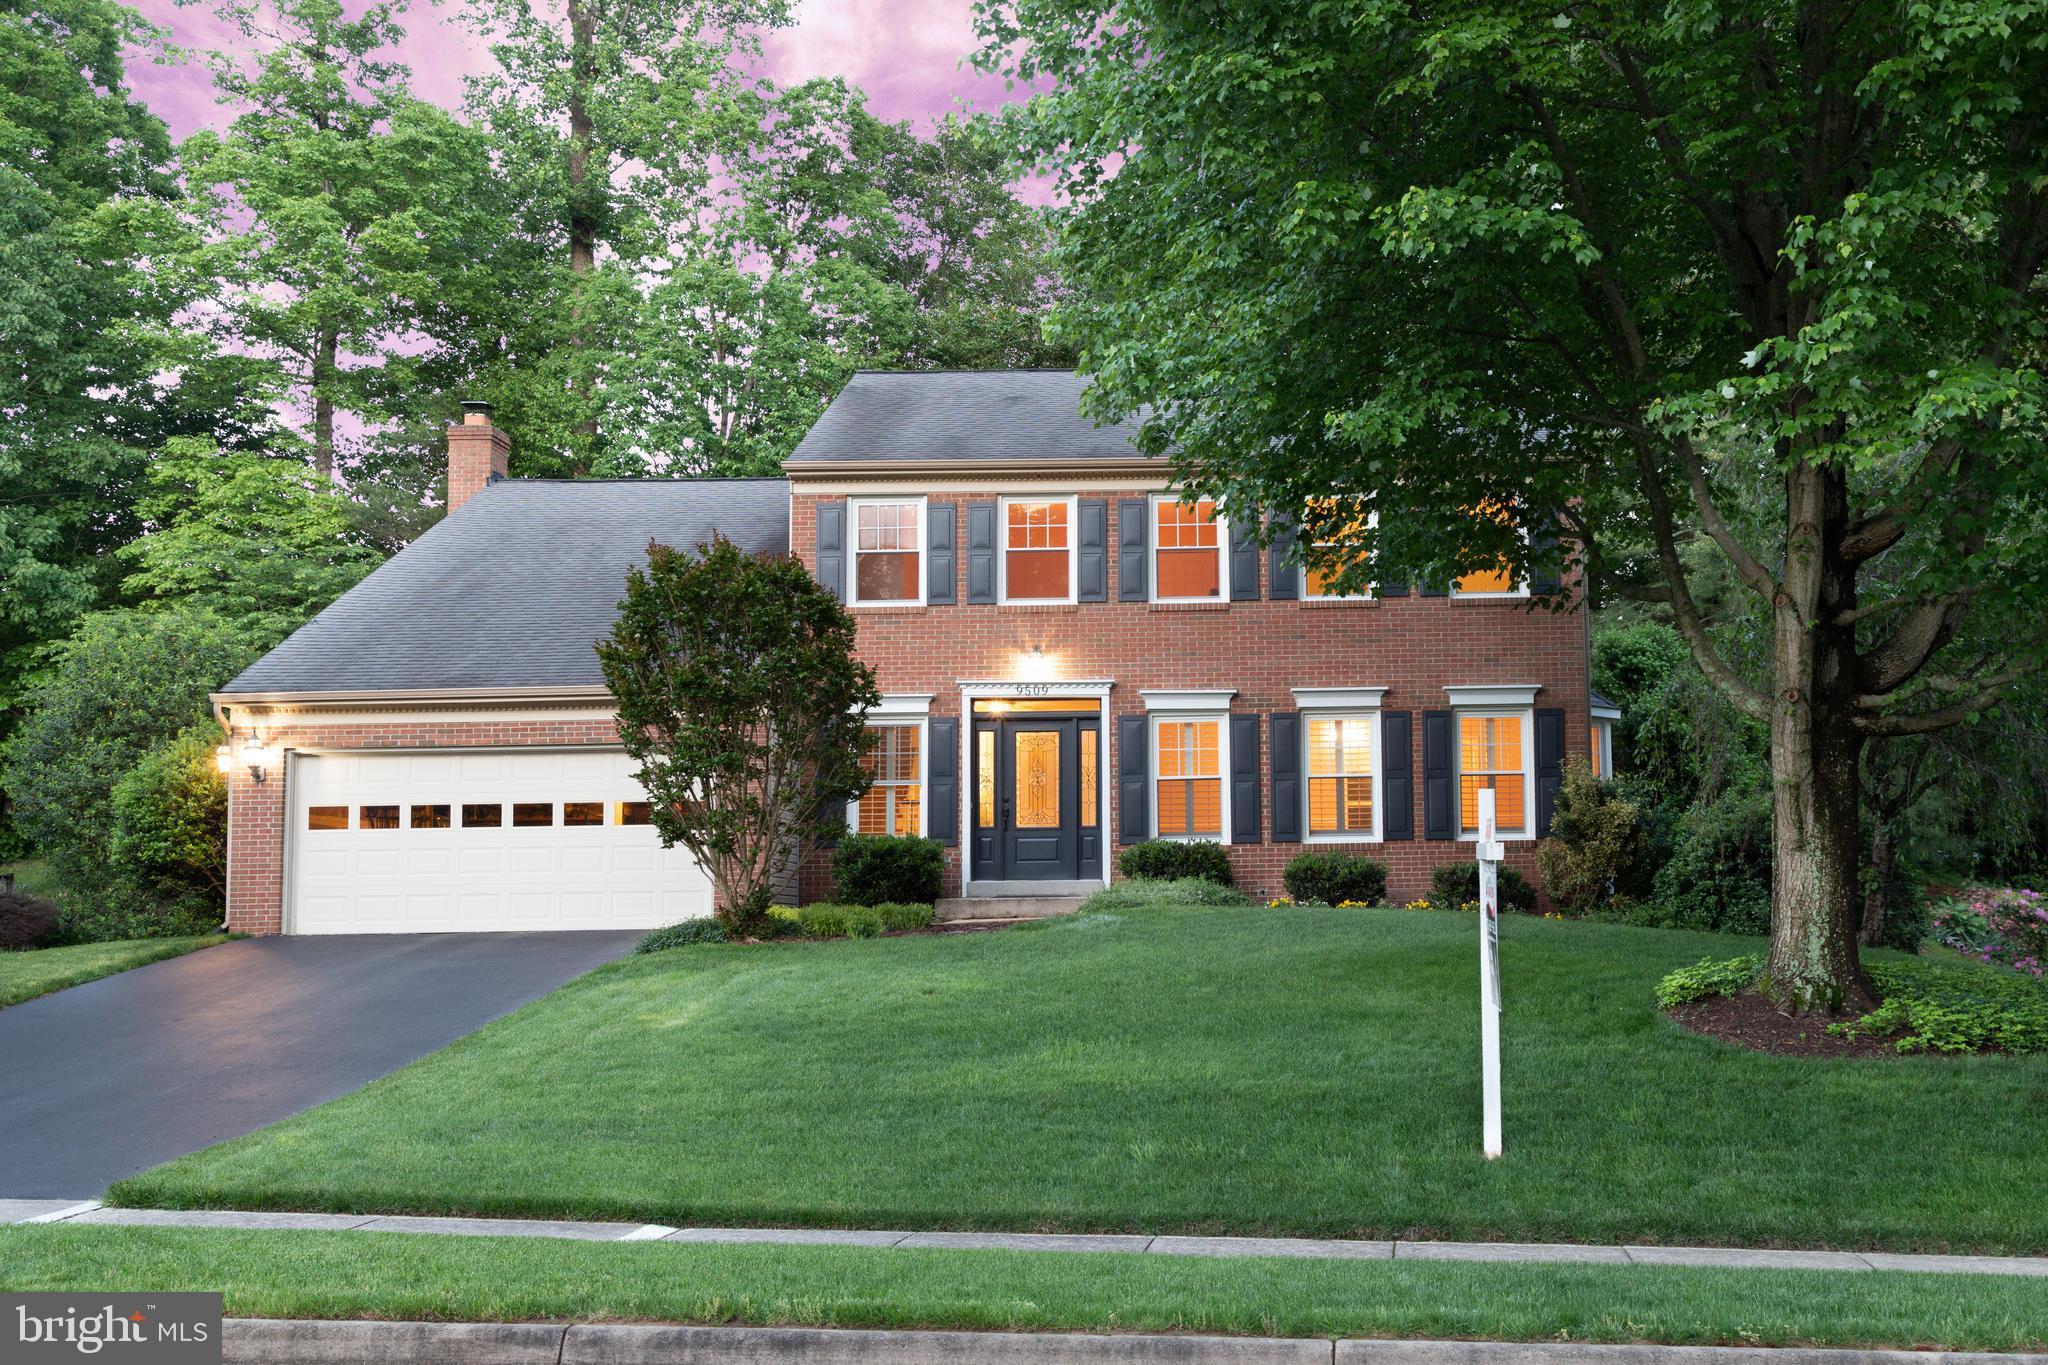 This lovely MOVE-IN READY home is set at the end of a serene Cul-de-sac in South Run Oaks!  The classical brick facade with the stunning windows and beautiful front door make it a welcoming sight for any visitor!  You feel a world away in this quiet setting and yet you are only a few minutes from access to #123 and the Fairfax County Parkway. Within eyesight of the front of the home is the trail access to Burke Lake and Lake Mercer plus the myriad of trails which so conveniently intersect this portion of Fairfax Station! This home has 4 large bedrooms and 3.5 updated bathrooms! It has a fully finished walk-up basement. The large open recreation room has hardwood throughout, recessed lights, plus a convenient wet bar area. A full bathroom, plus a laundry room and a very large carpeted Flex Room complete this lower level.  This well-cared for home boasts hardwood throughout the vast majority of the 3 levels of living!  The back yard is a quiet oasis where you can relax on a large deck, grill on the accompanying patio or stroll up the stone steps to a special large cleared hideaway retreat for play, entertaining or enjoyment! The open sunny floorplan has gorgeous plantation shutters on many of the windows and updates galore. All bathrooms boast lovely and tasteful recent updates!  The kitchen has newer cabinets, newer appliances and tasteful granite. A breakfast bar, along with a good-sized breakfast nook make the kitchen the ~heart of the home~!  There is open access to the sunny family room where you can so easily step out onto the deck, patio and pristine backyard.  There is an abundant of space for large gatherings and a variety of activities. Add to this the convenient commute options available with the nearby commuter lots, metro and VRE stations and you have a perfect home. This home is also part of the highly acclaimed Silverbrook Elementary, and South County Middle School and High school pyramid!NEW A/C UNIT, HOT WATER HEATER, FURNACE & PROGRAMMABLE THERMOSTAT BEING INSTALLED 5/21/19!!